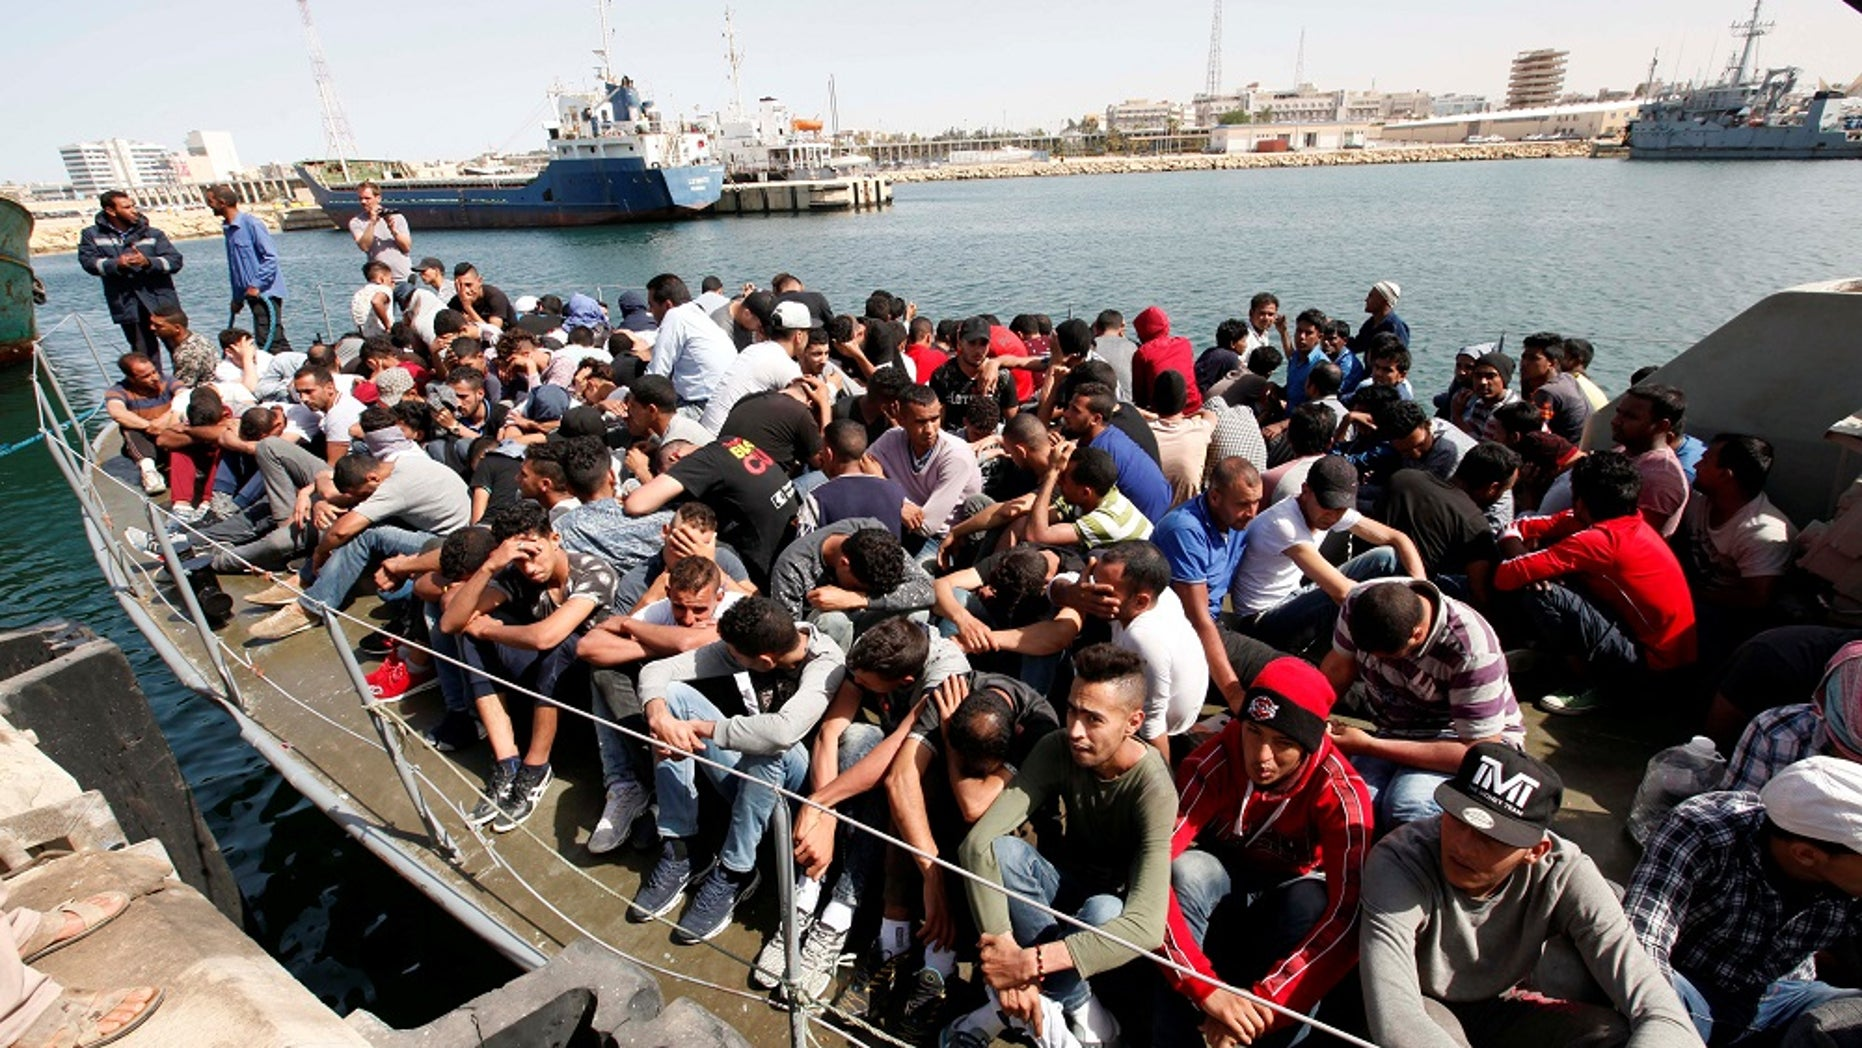 Illegal migrants arrive by boat at a naval base after they were rescued by Libyan coastguard in the coastal city of Tripoli, Libya, May 10, 2017.